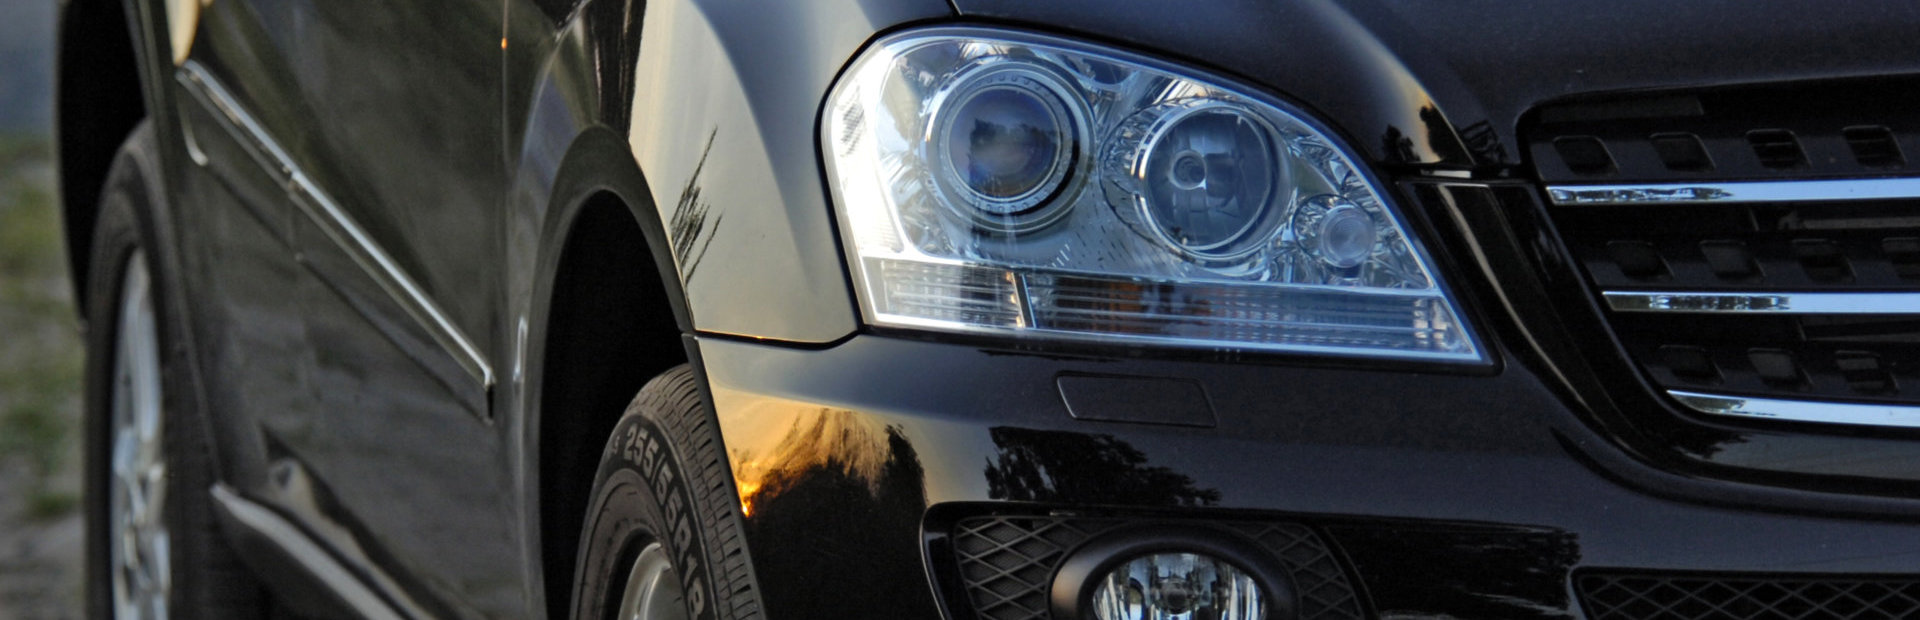 head light of a car